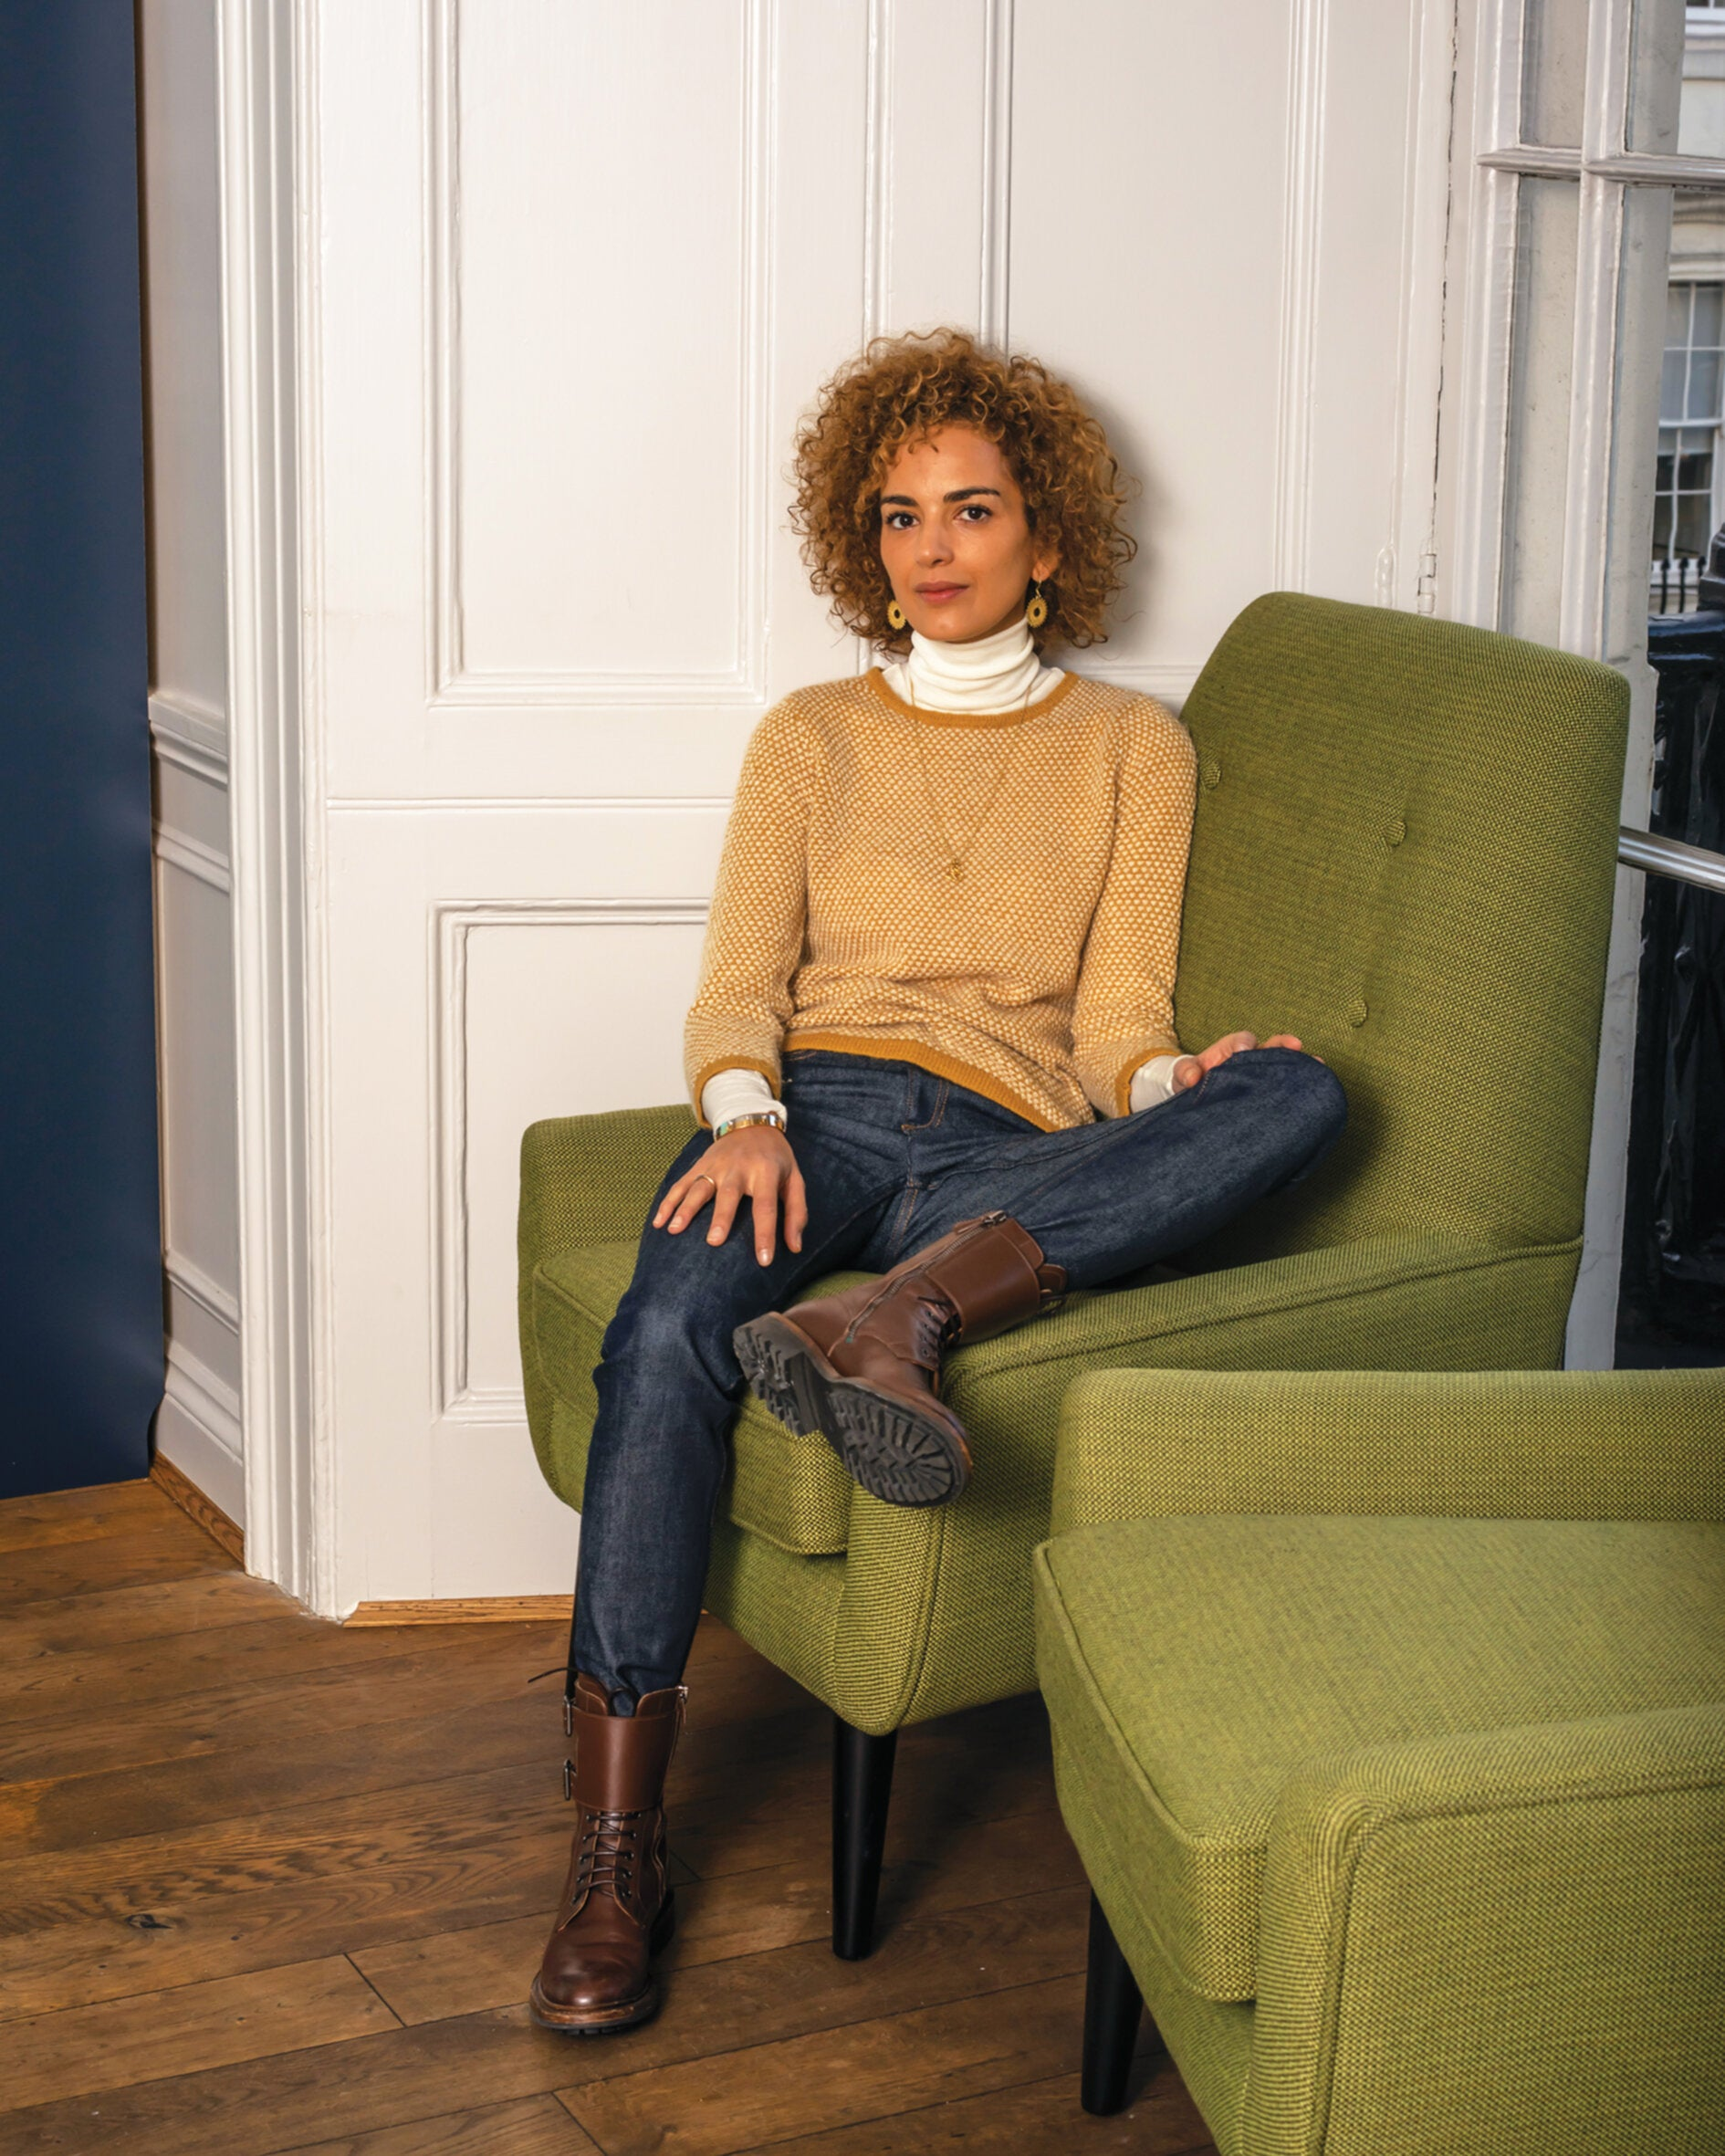 Leïla Slimani's Sex and Lies: a brave and honest look at the lives of Moroccan women